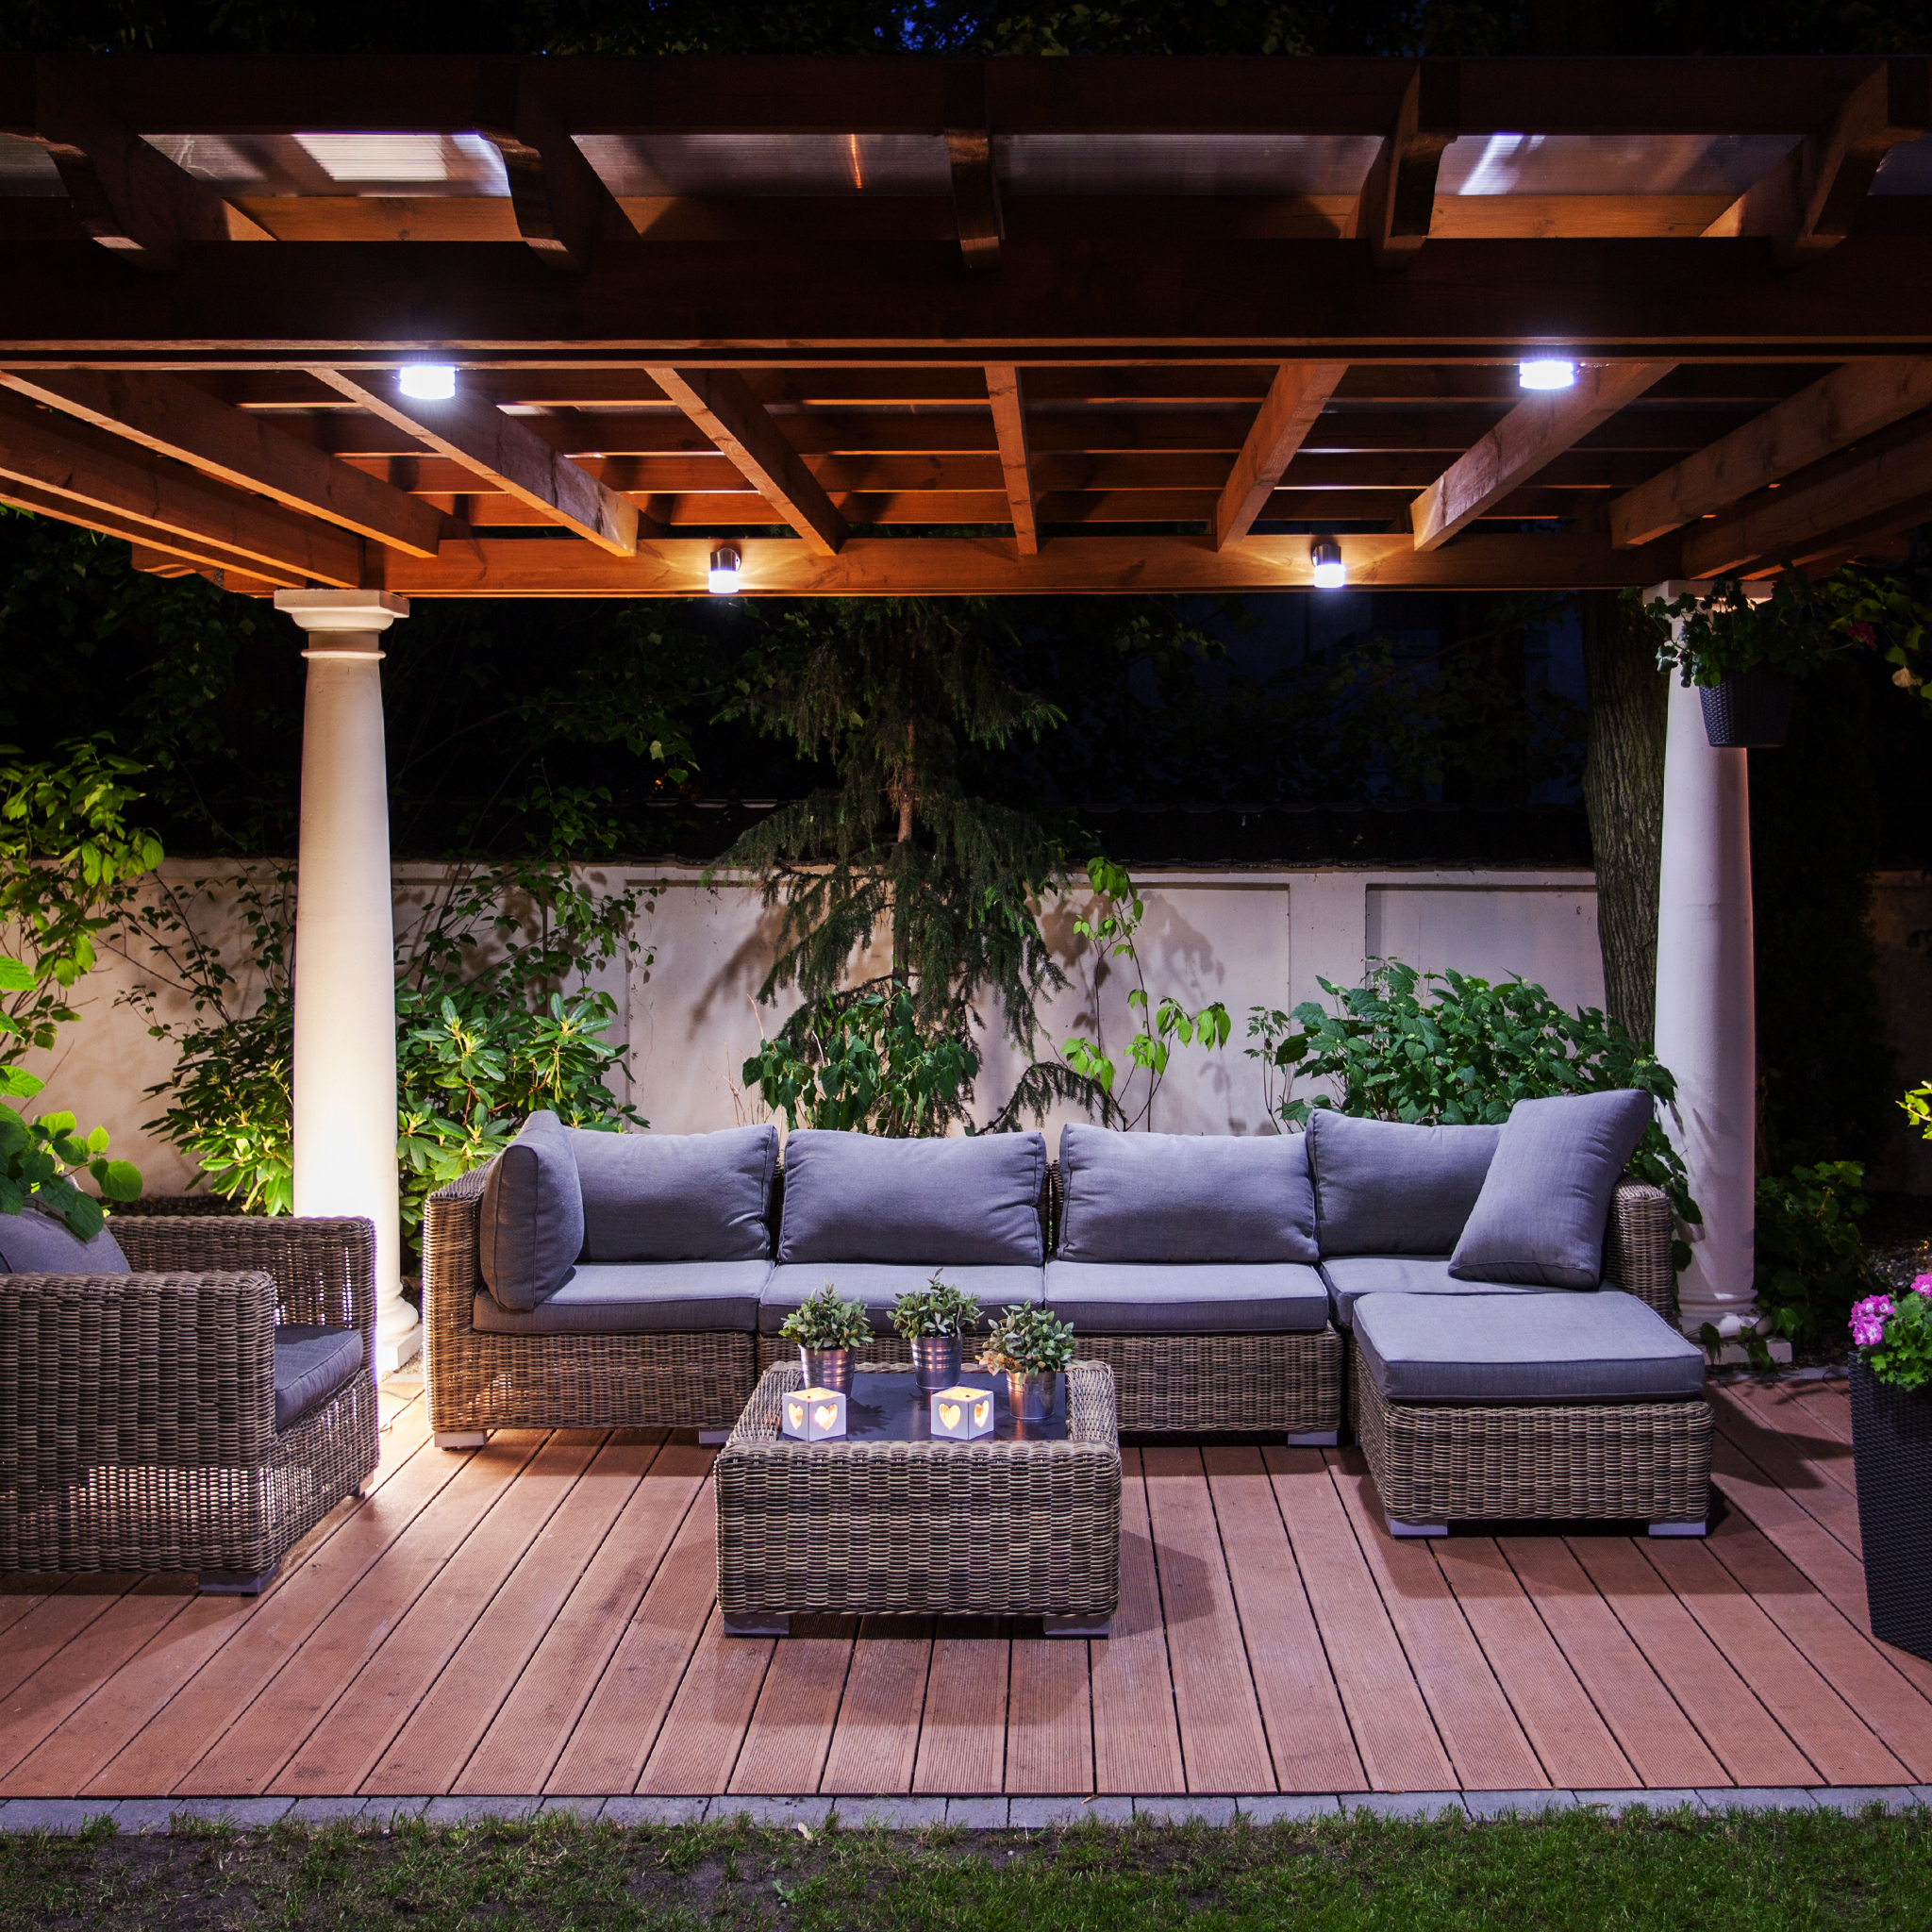 A backyard patio with seating and a table under a pergola.